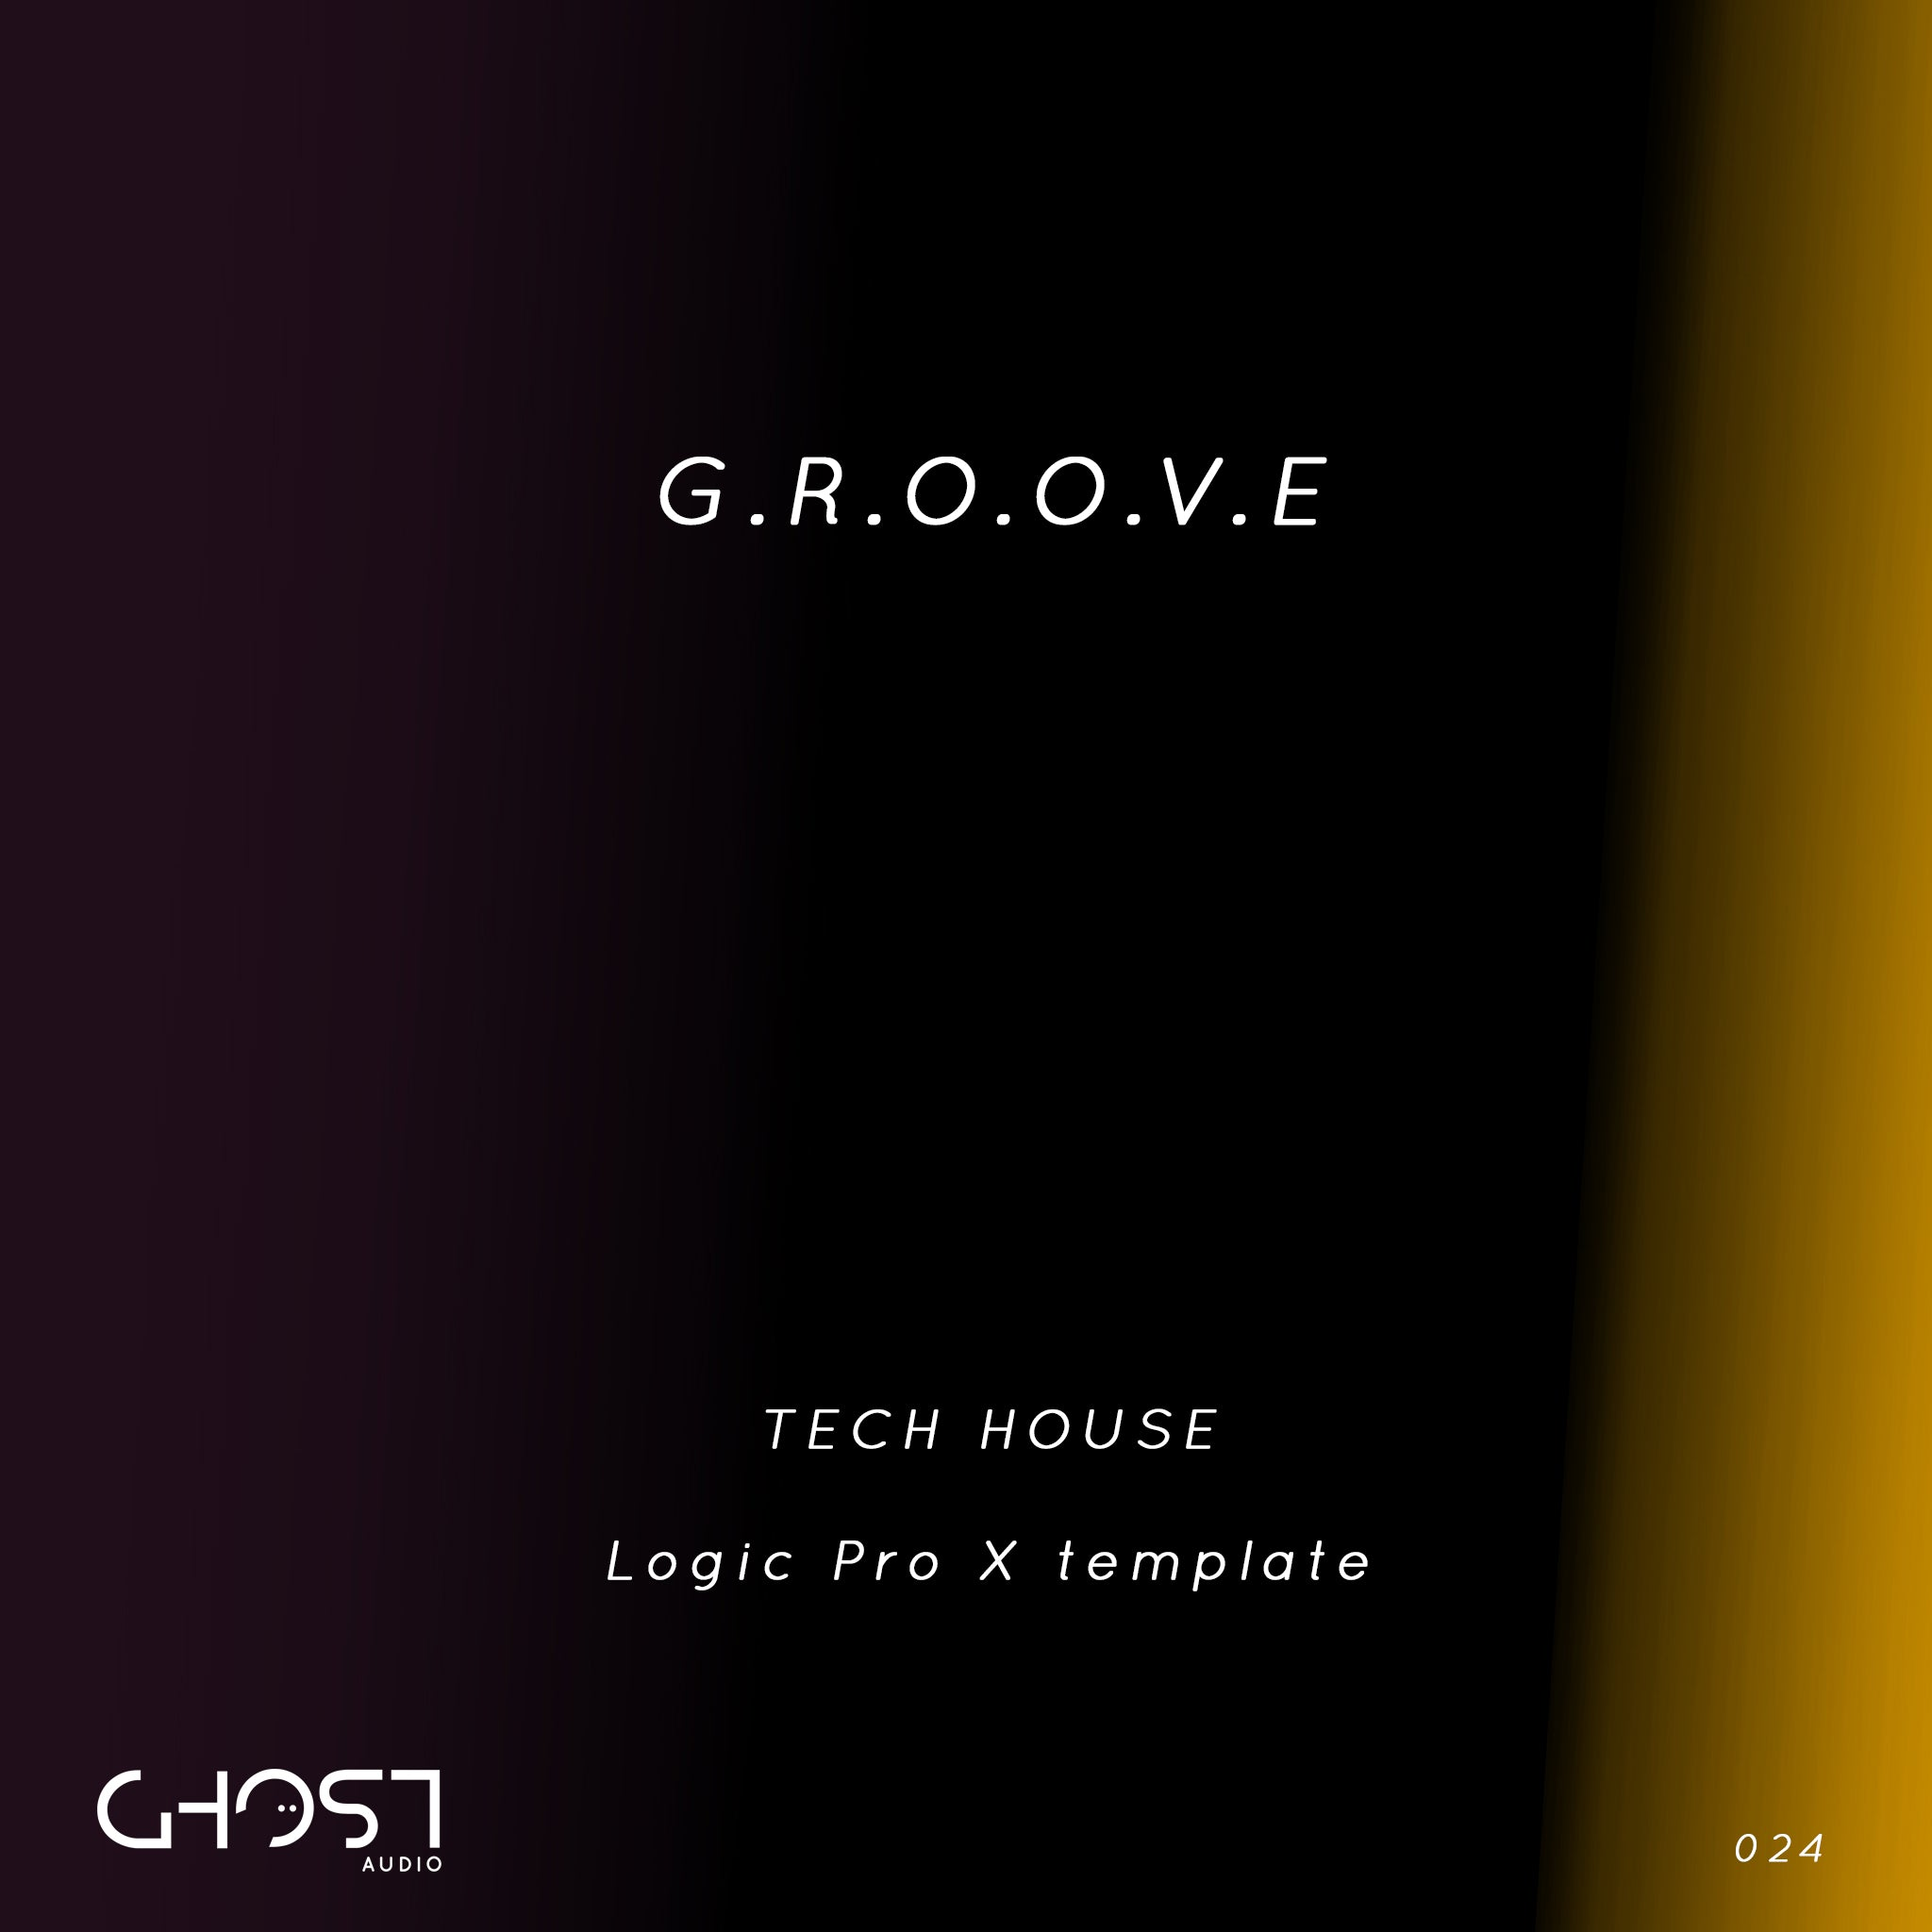 G.R.O.O.V.E ( TECH HOUSE - LOGIC PRO X TEMPLATE )